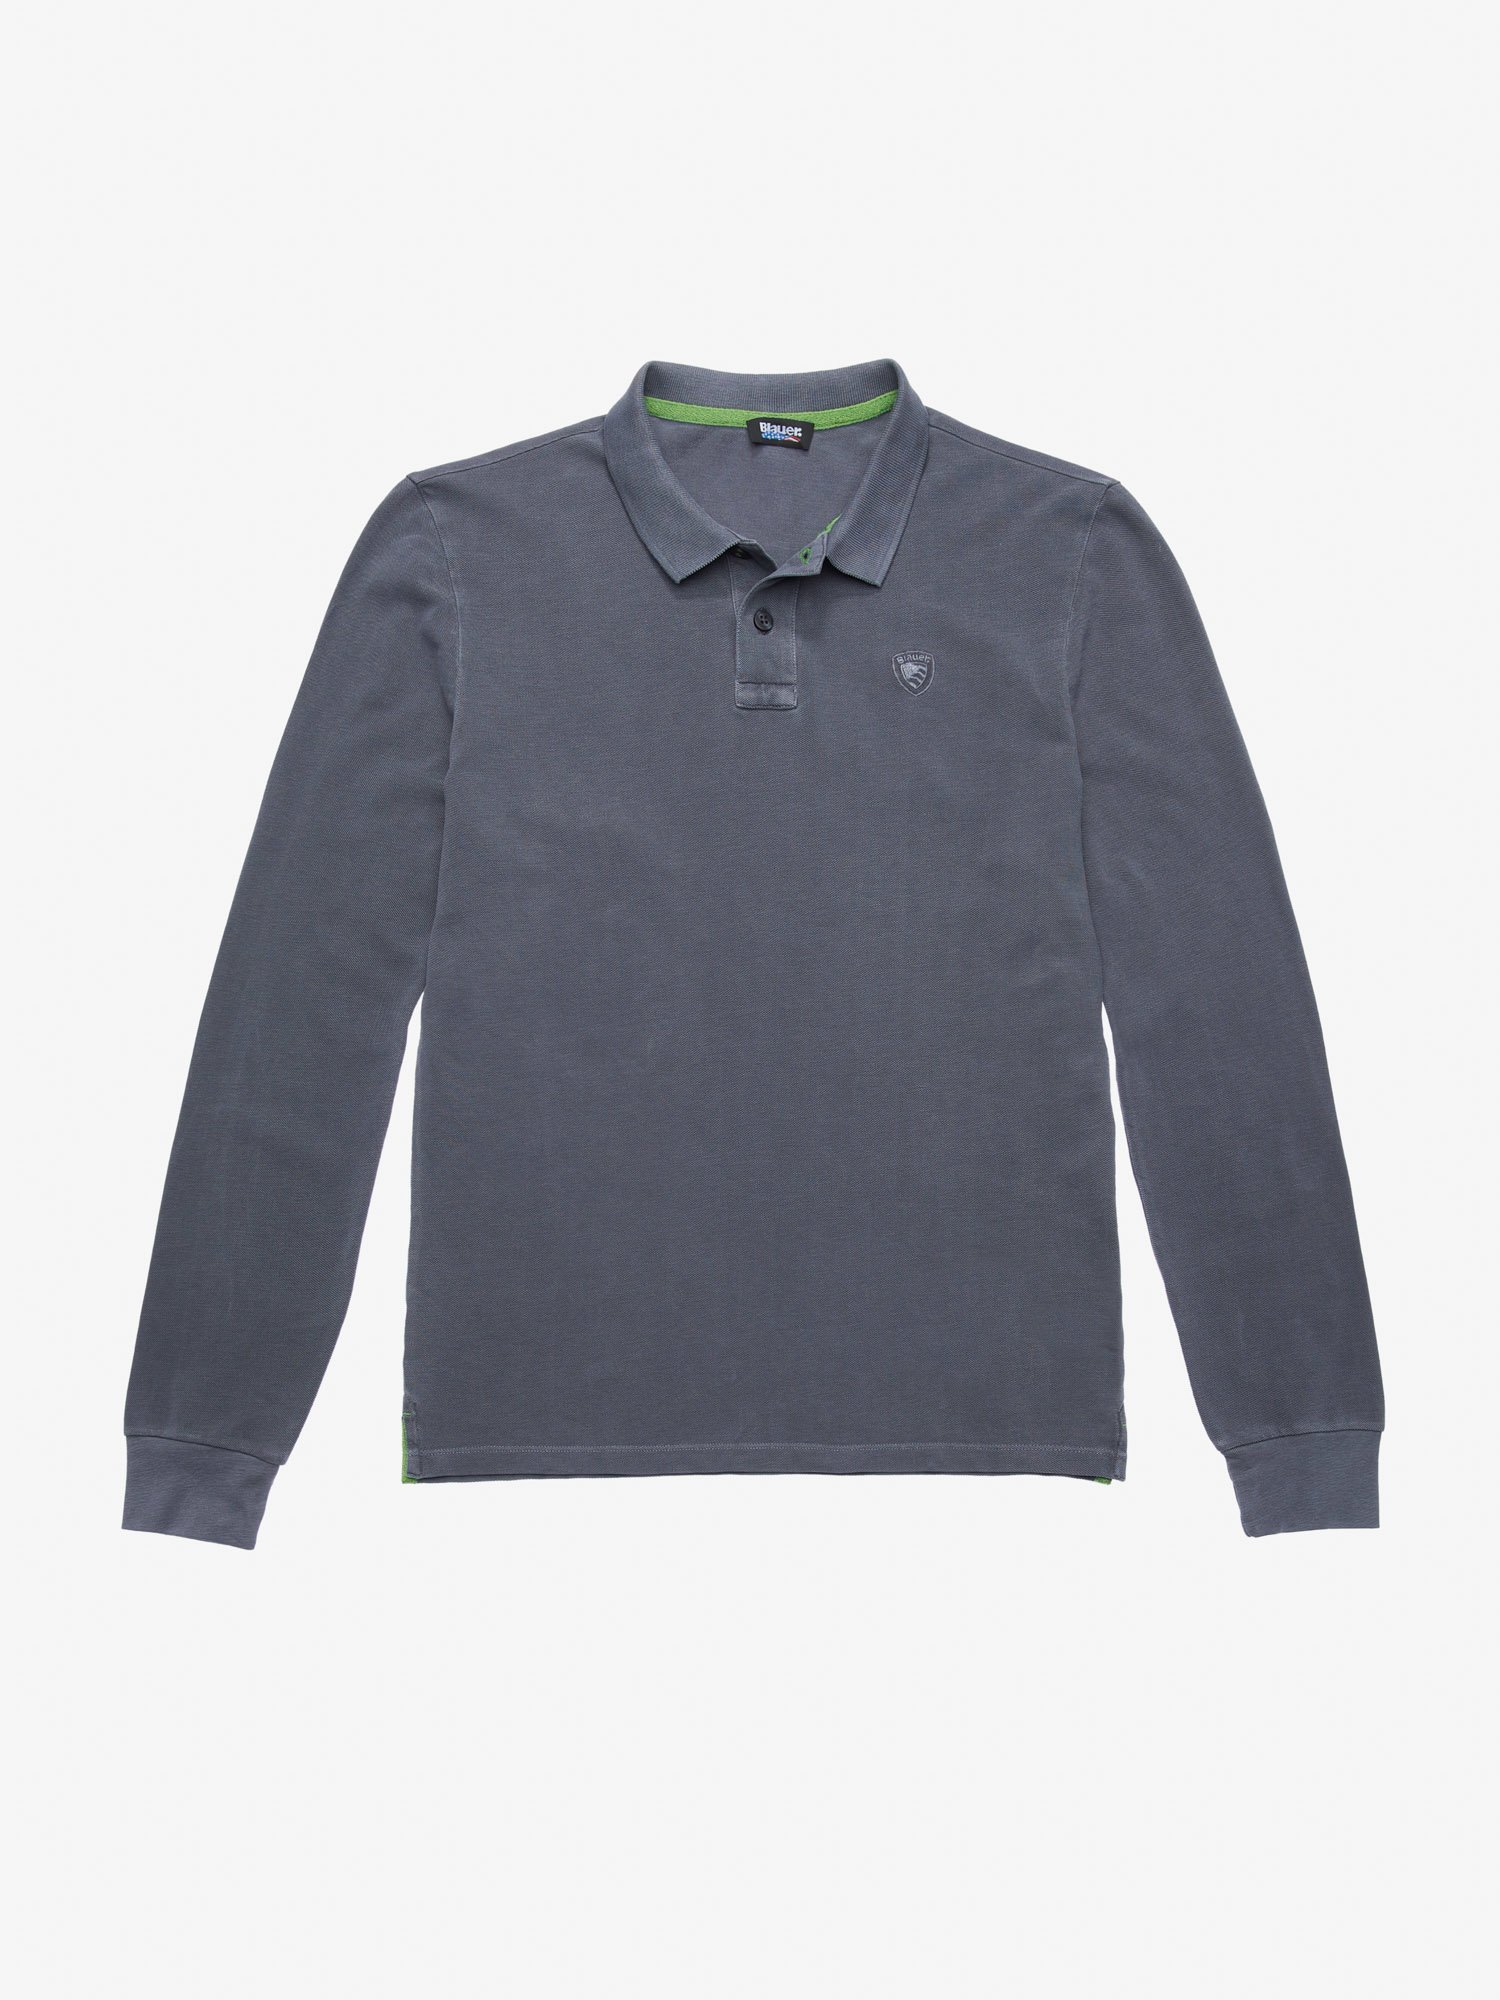 LONG SLEEVE GARMENT DYED COTTON POLO SHIRT - Blauer